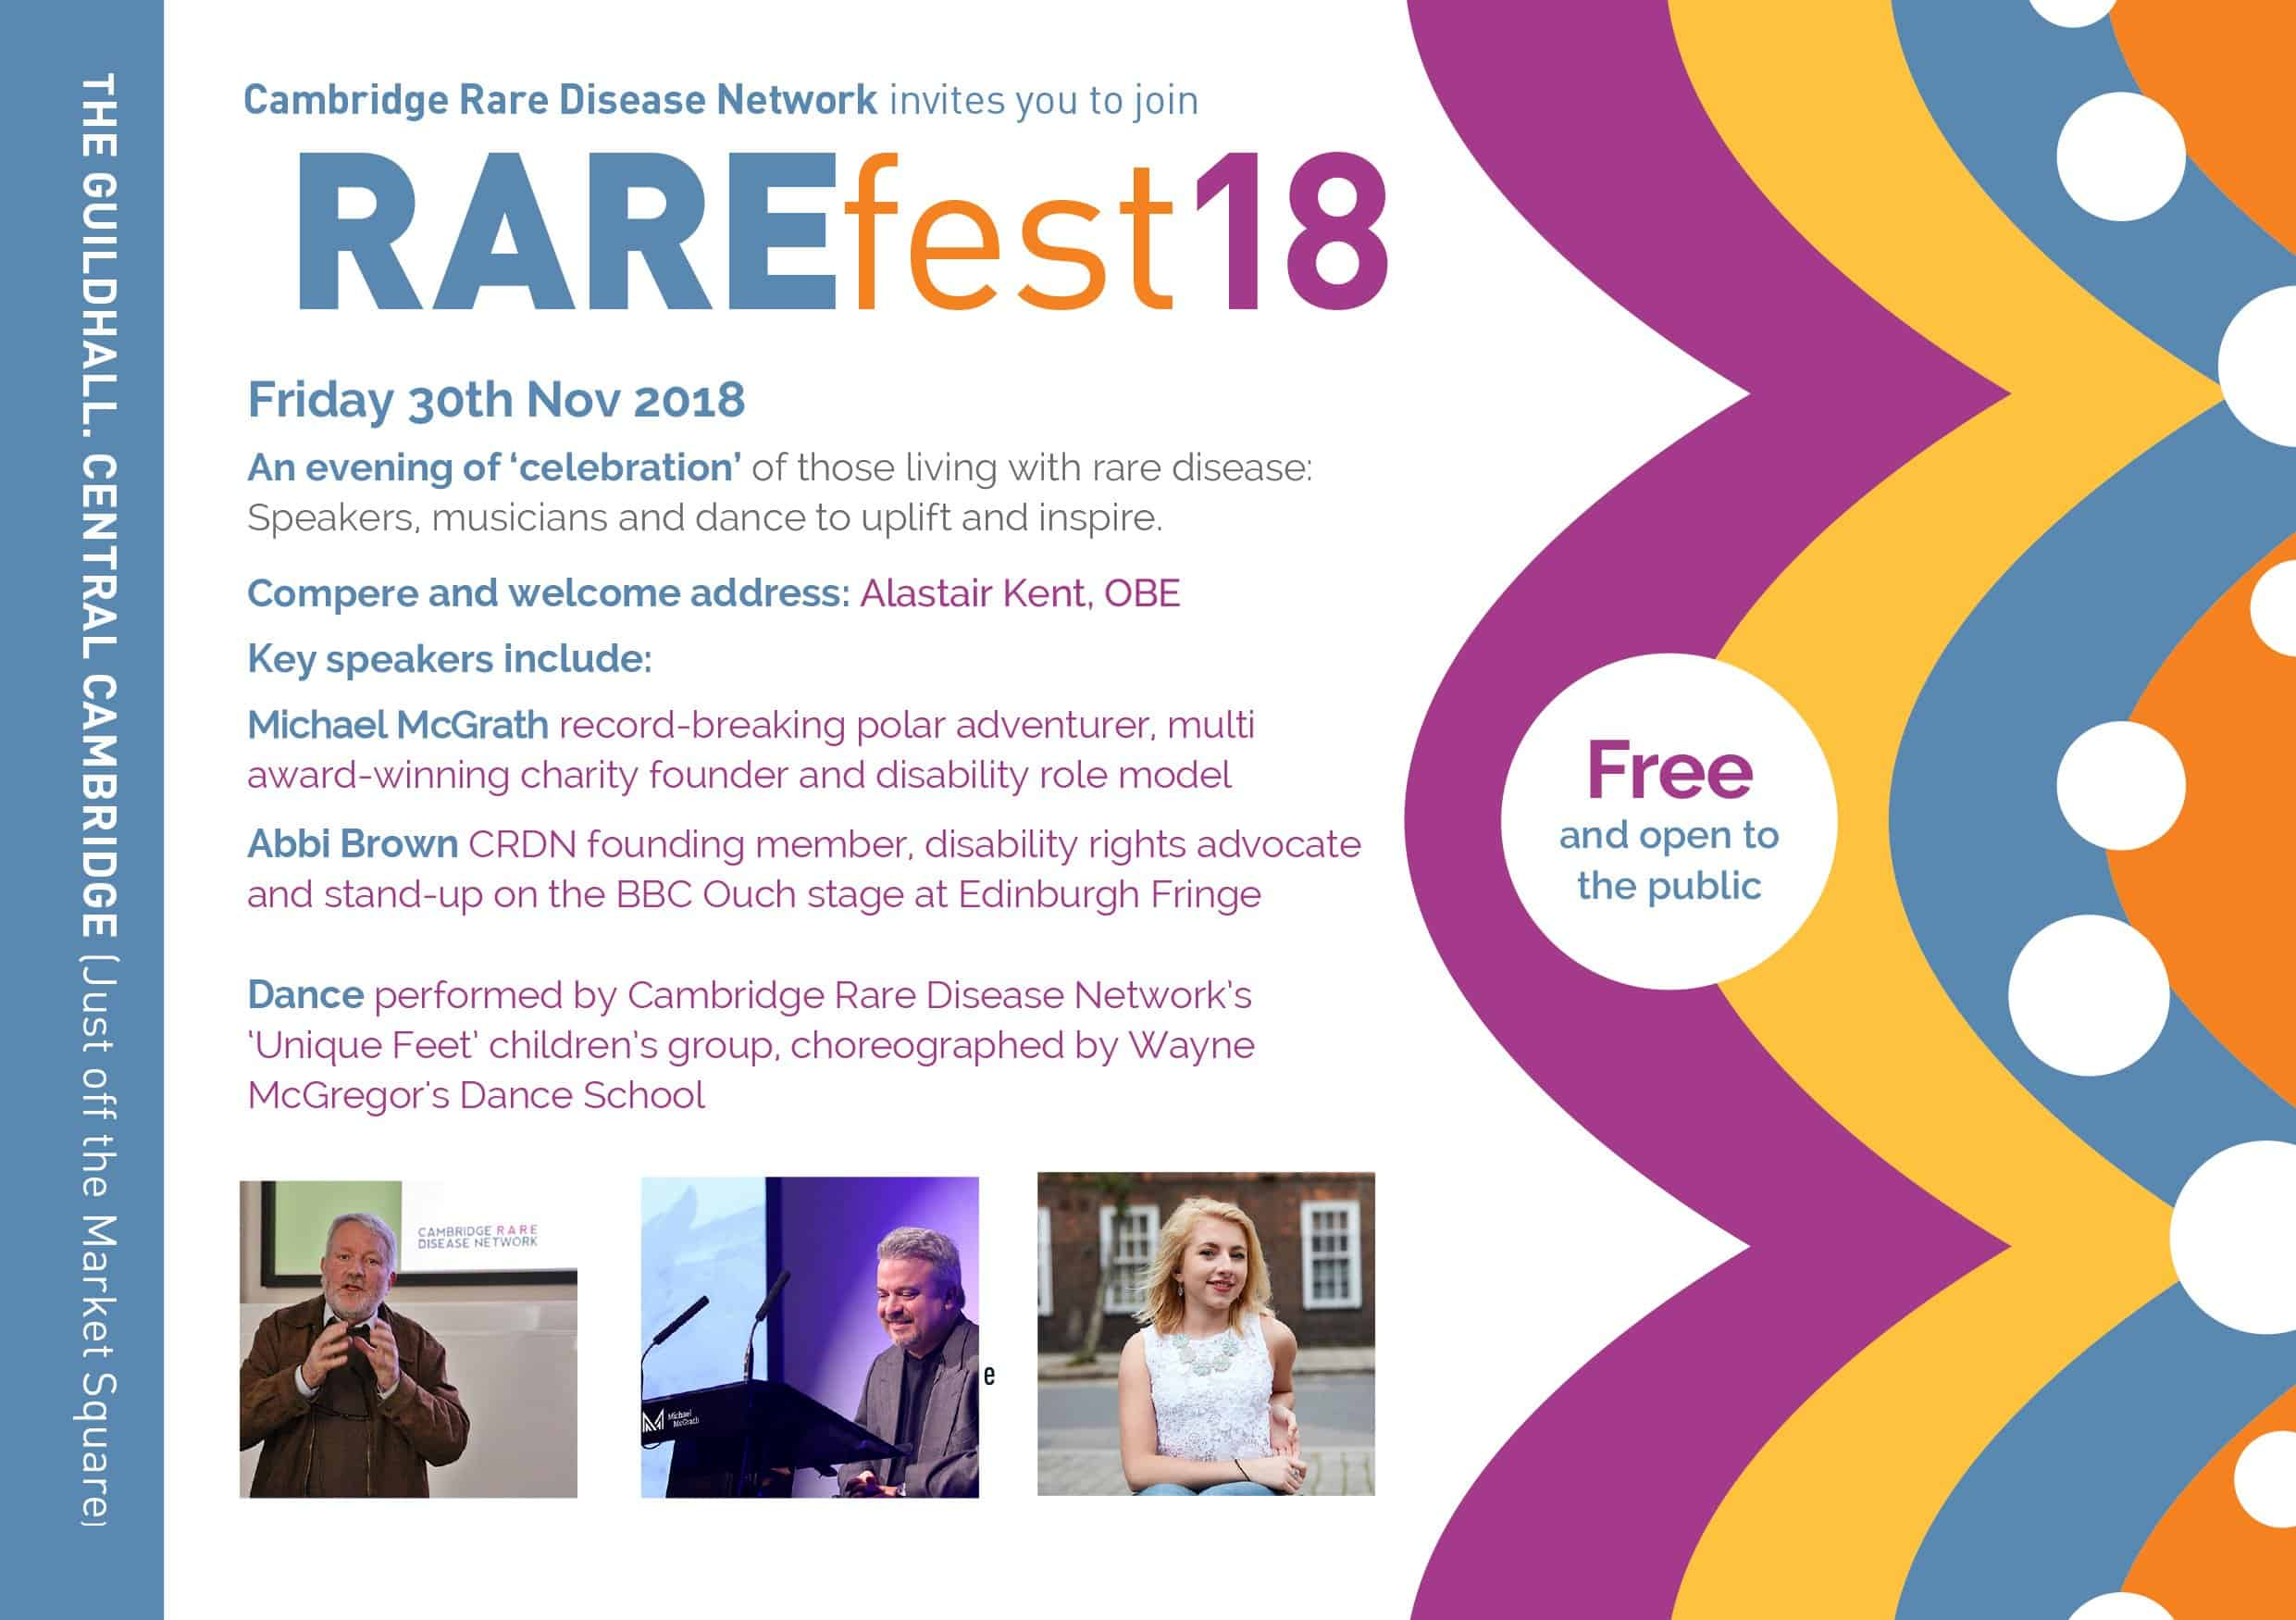 Cambridge Rare Disease Network - RAREfest | The Programme 1